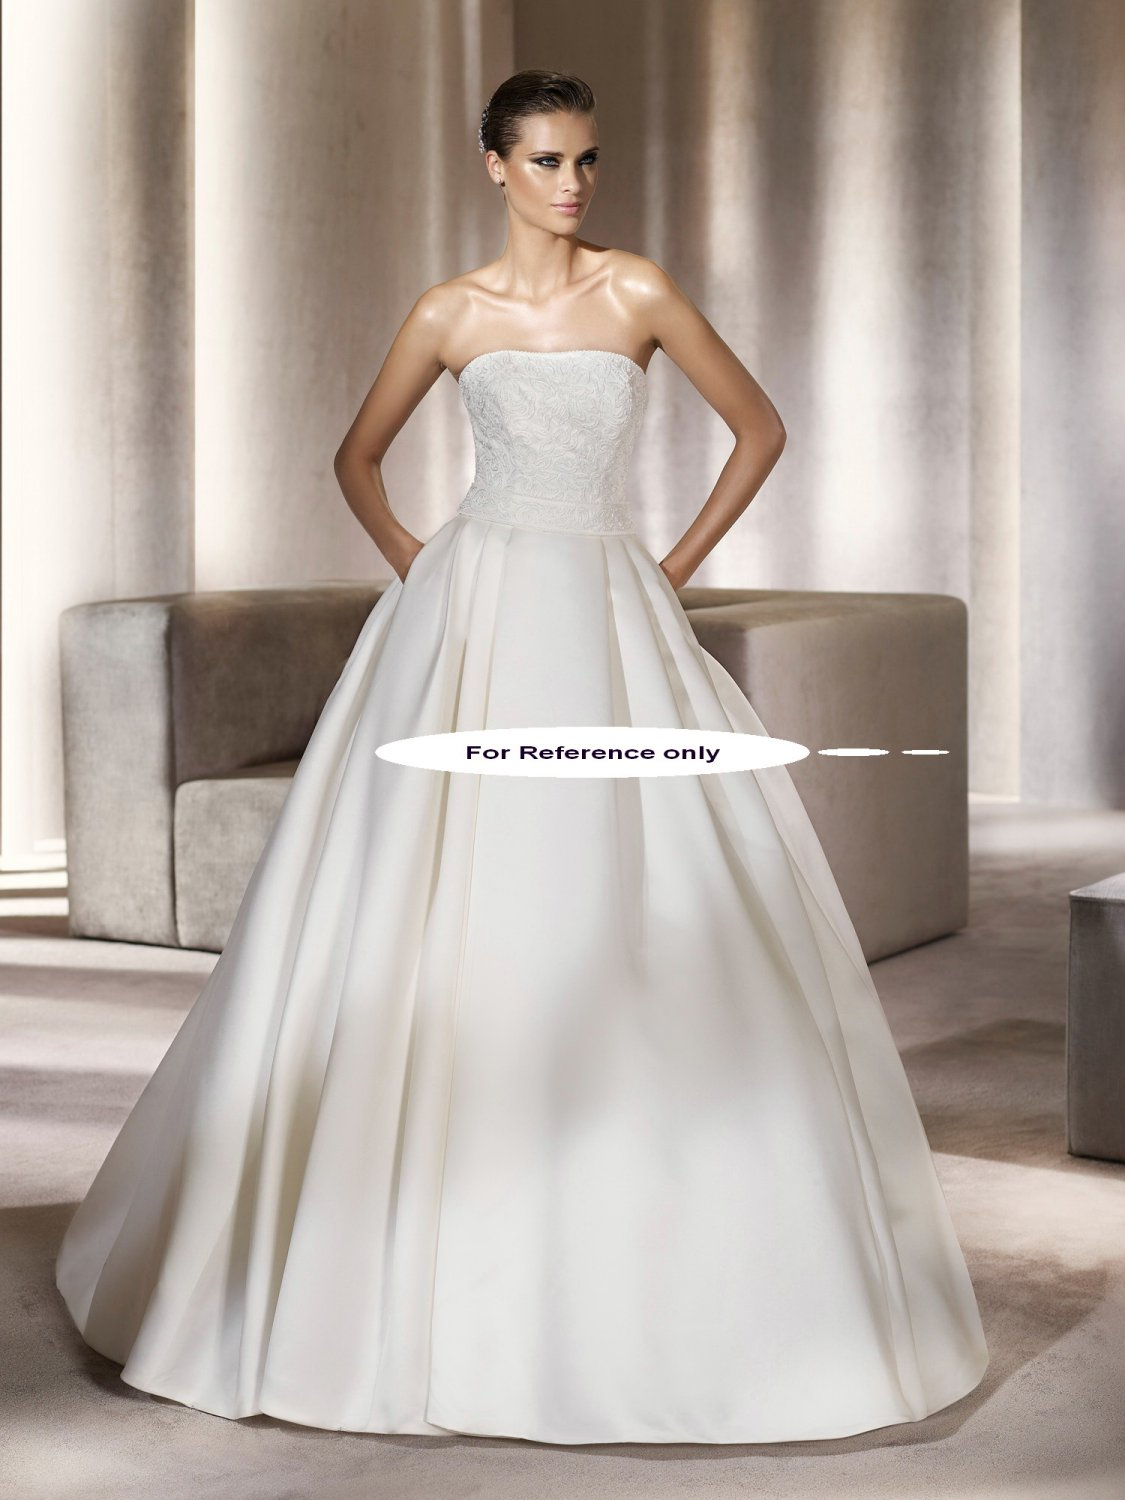 Strapless ball wedding gown-Piccola